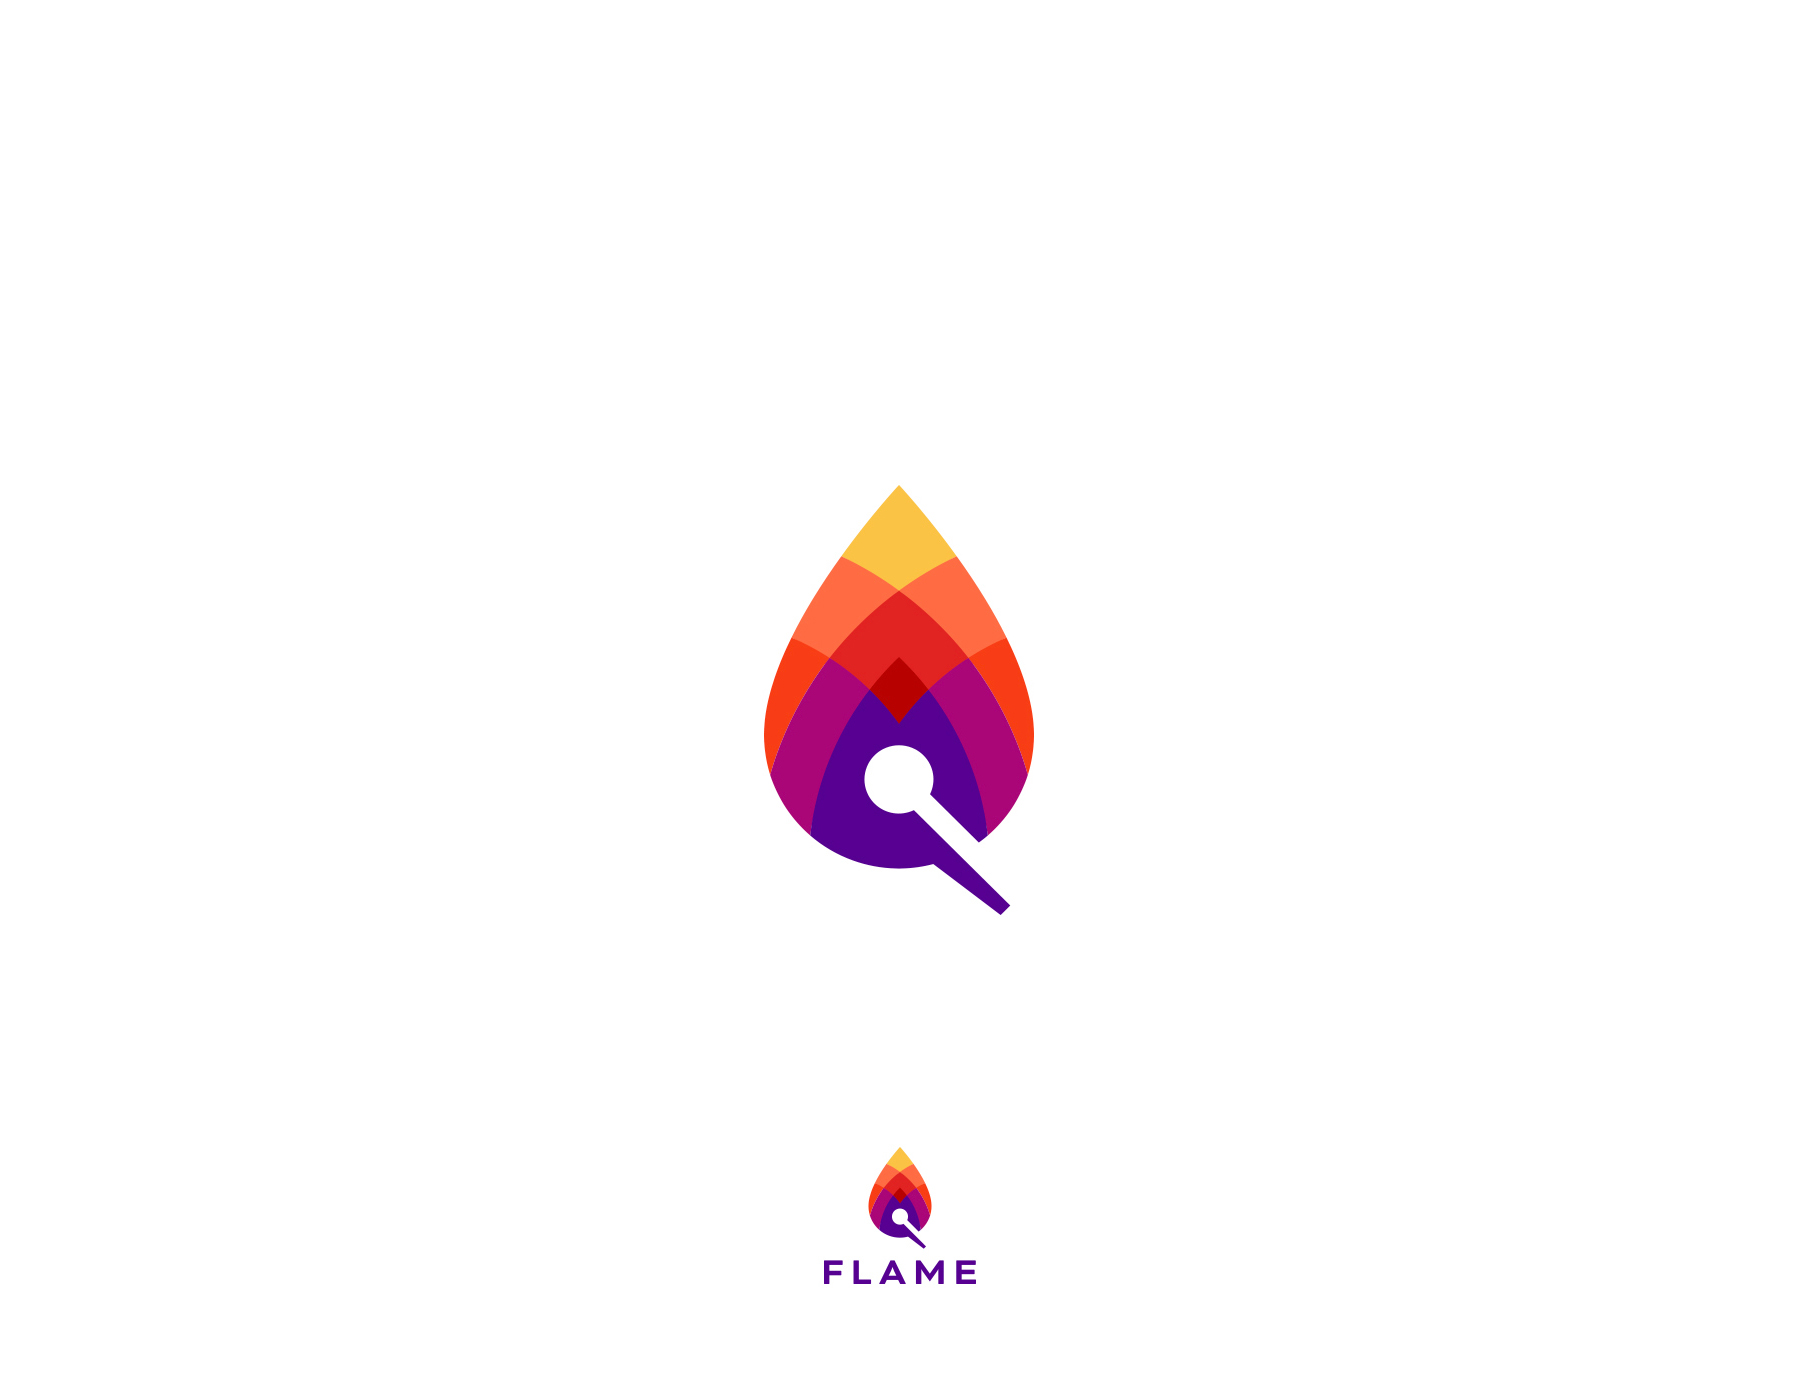 Creative logos with hidden symbolic meaning - Flame